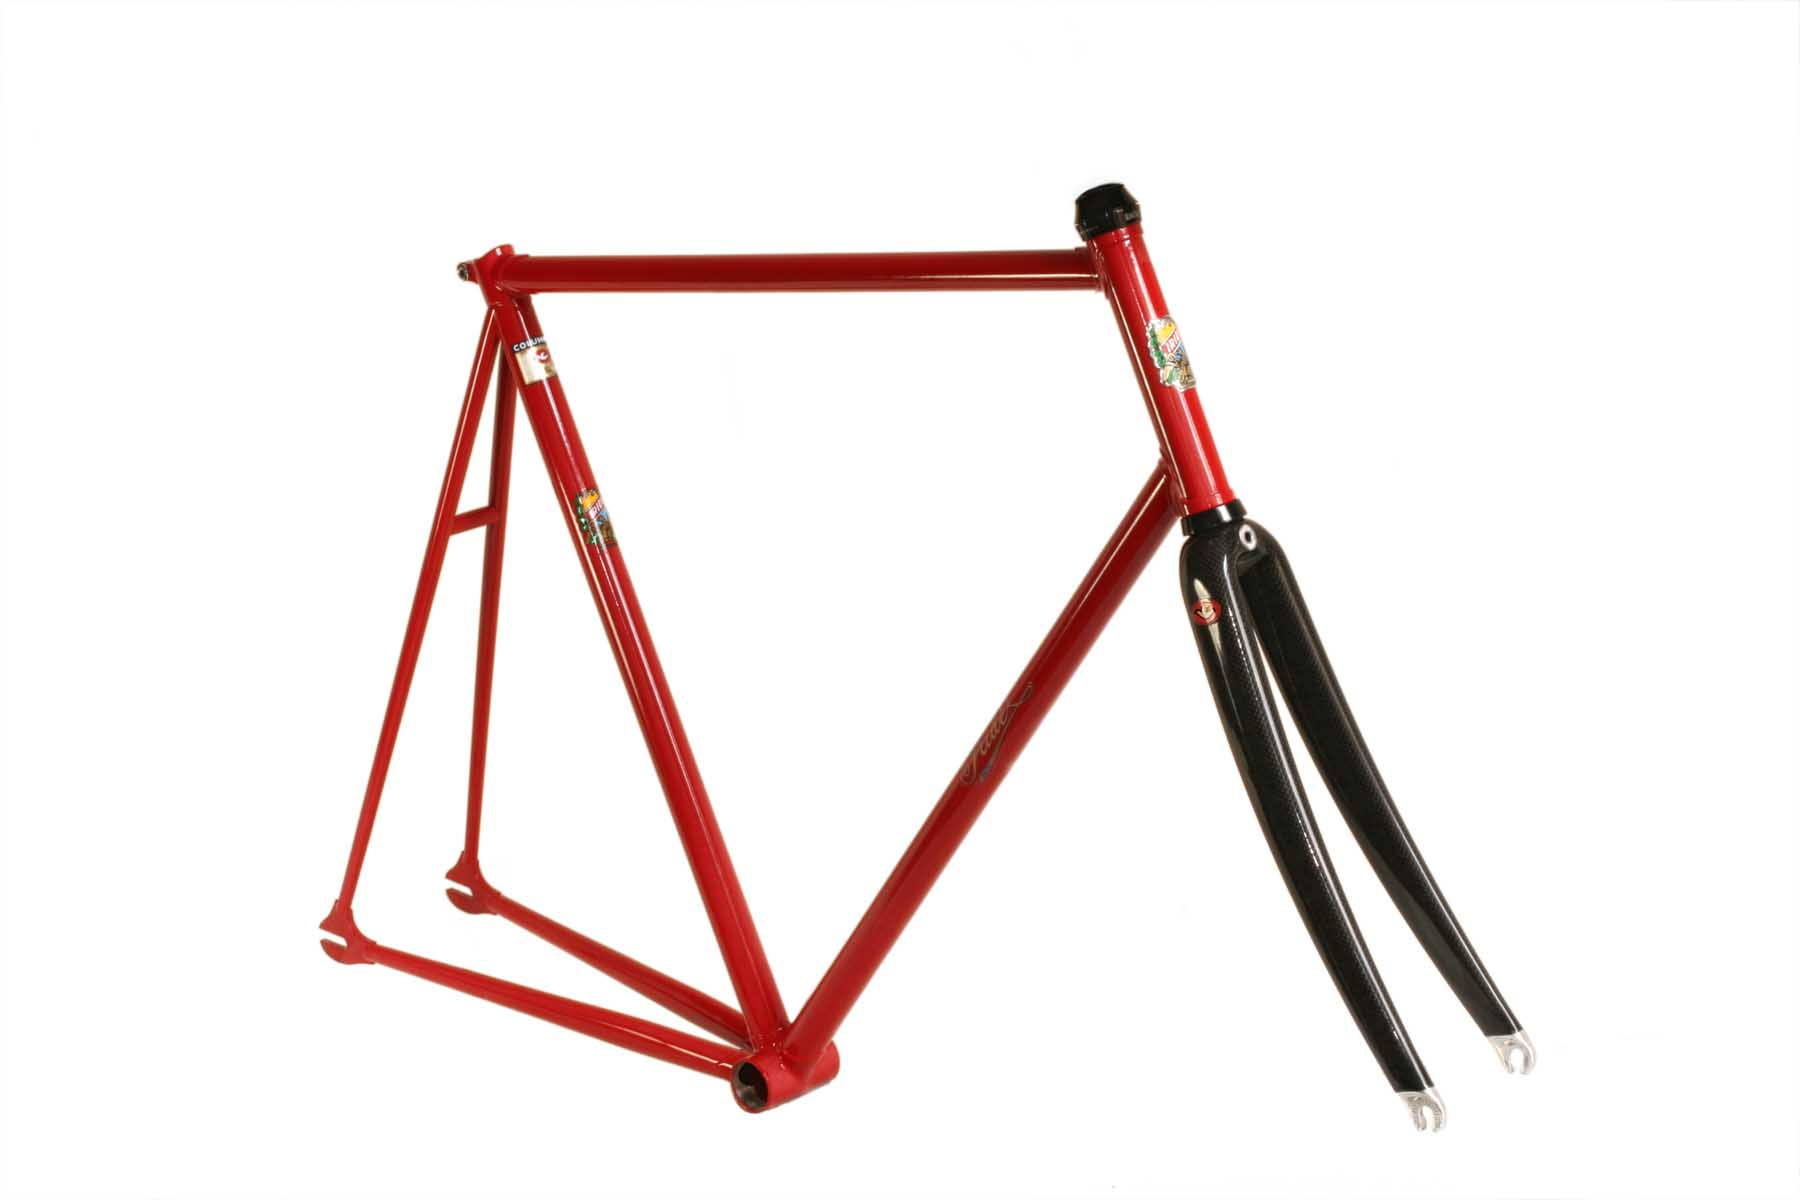 The New IRIDE Track Bike Frame Kit, fixed gear, fixie, or pista ...